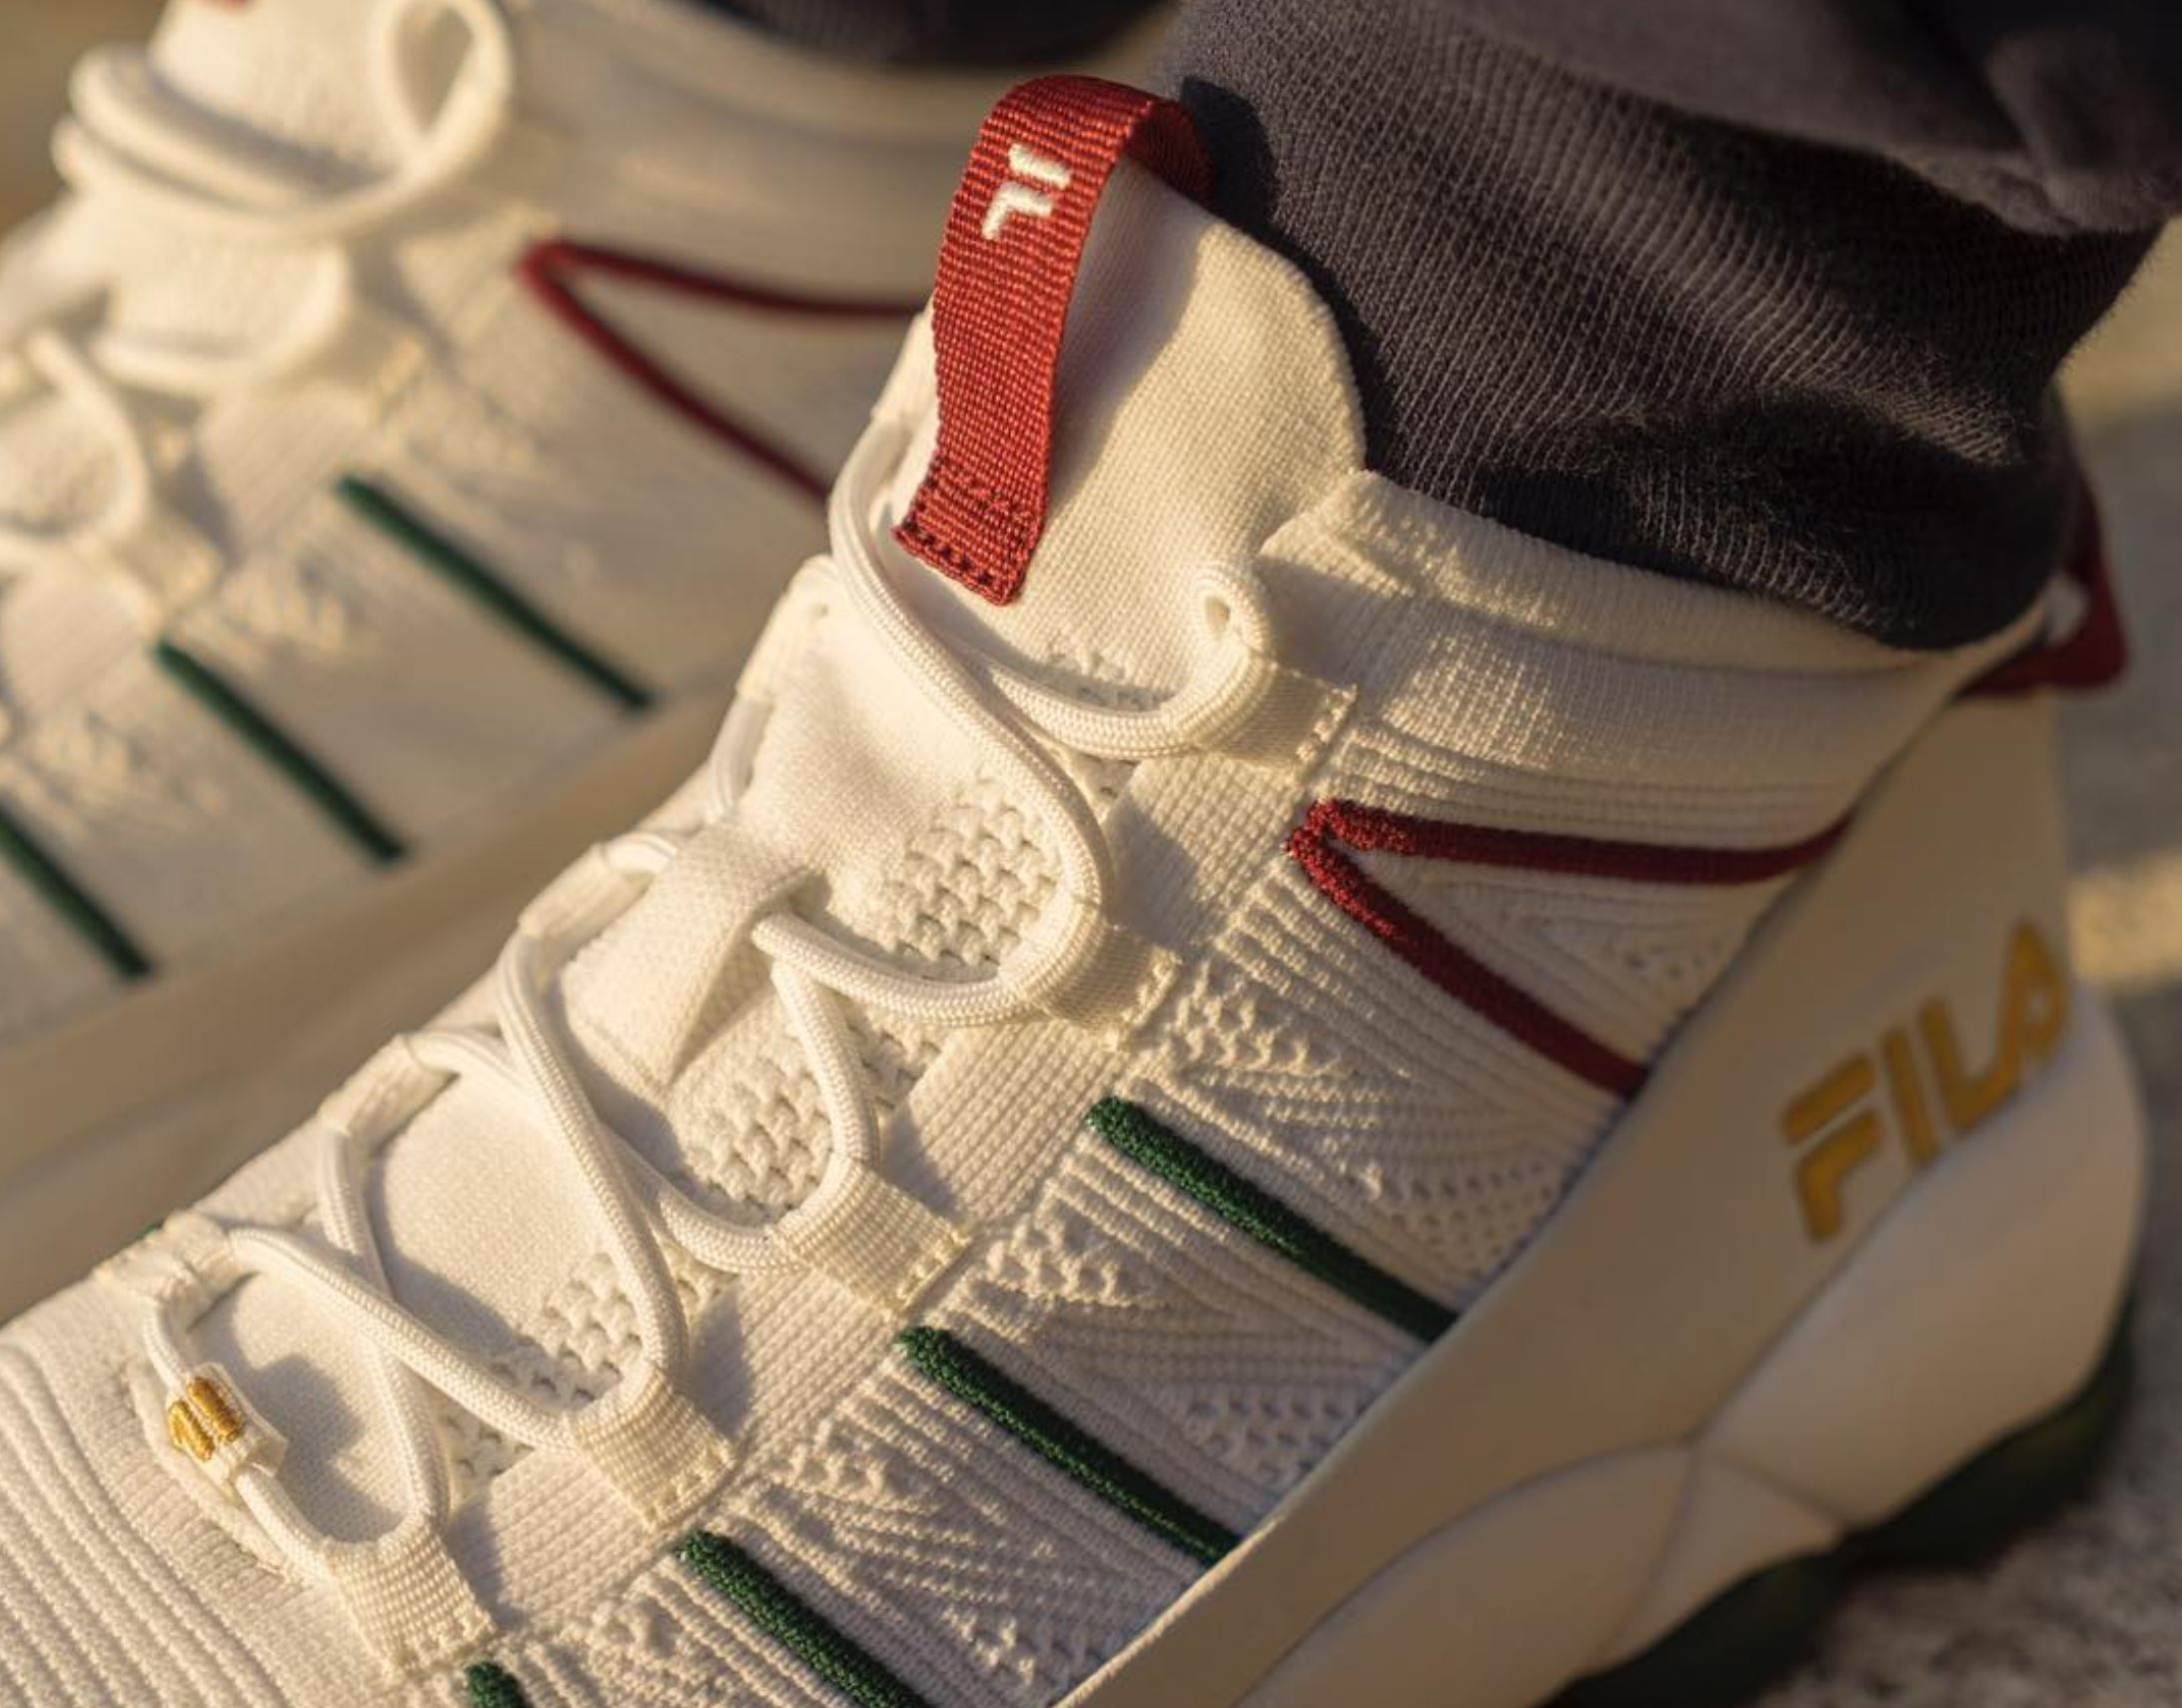 483cf6dbccd7f4 The FILA Spaghetti Knit Drops in Gucci-esque Colorway - WearTesters